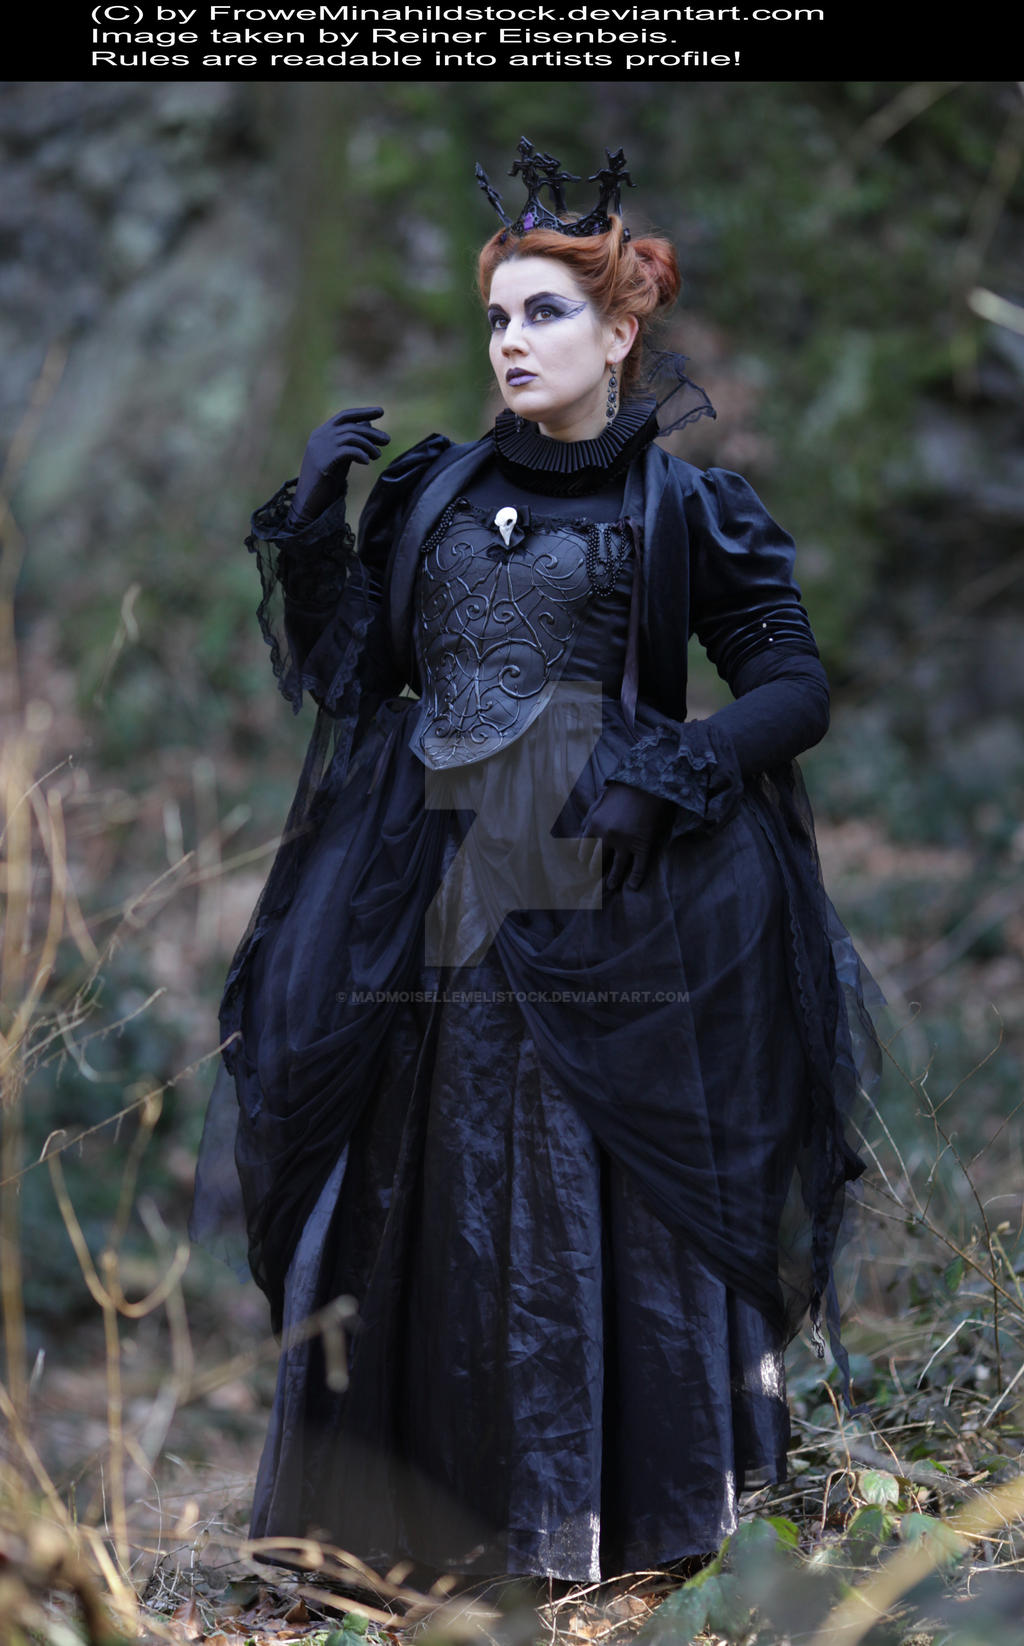 Evil Queen Gothic Stock 005 by MADmoiselleMeliStock